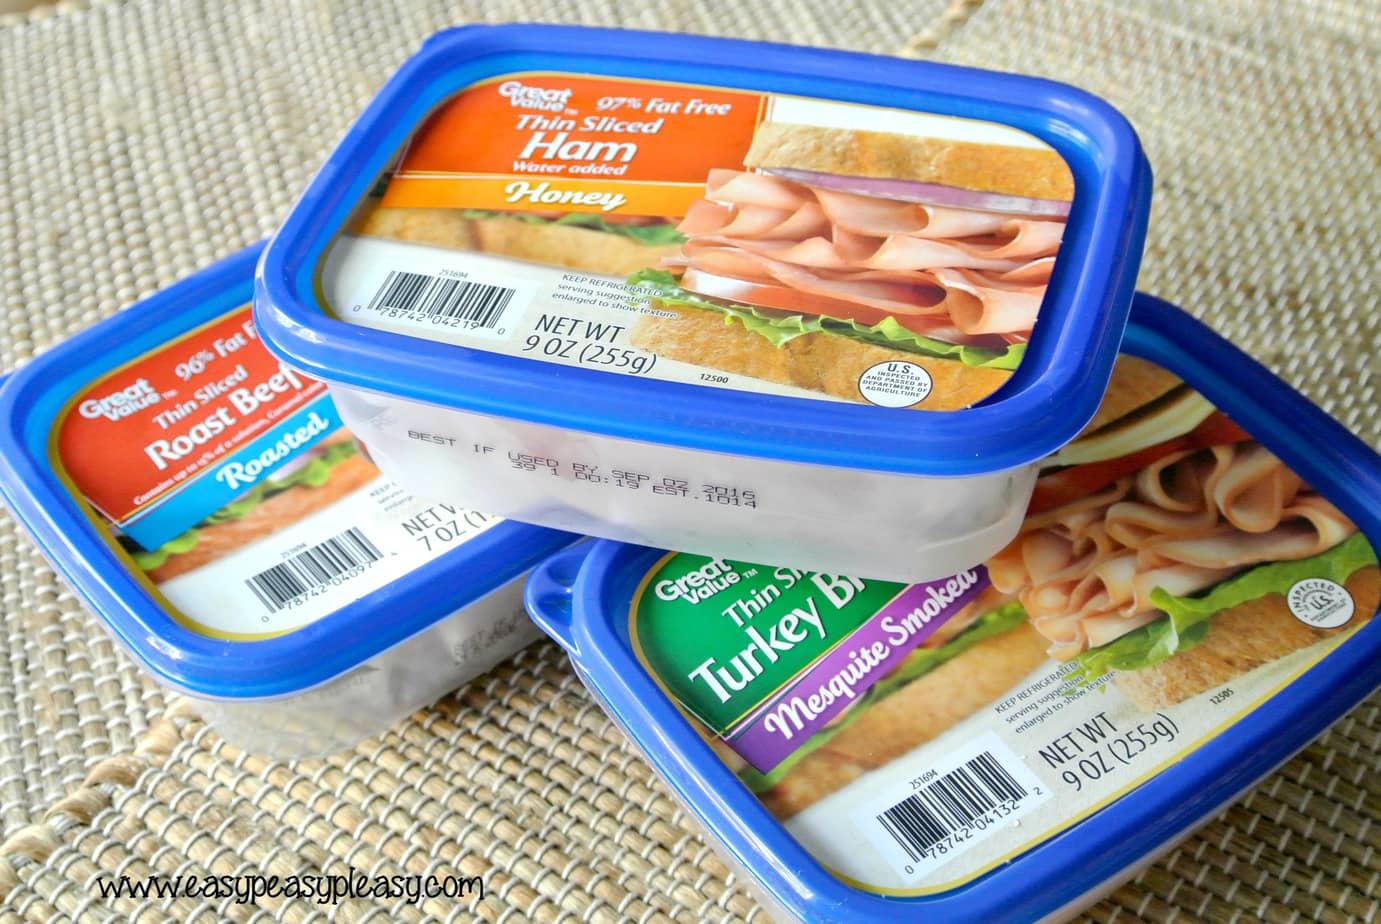 Don't throw these containers away! Let me show you how I use these lunch meat containers for cooler meals!